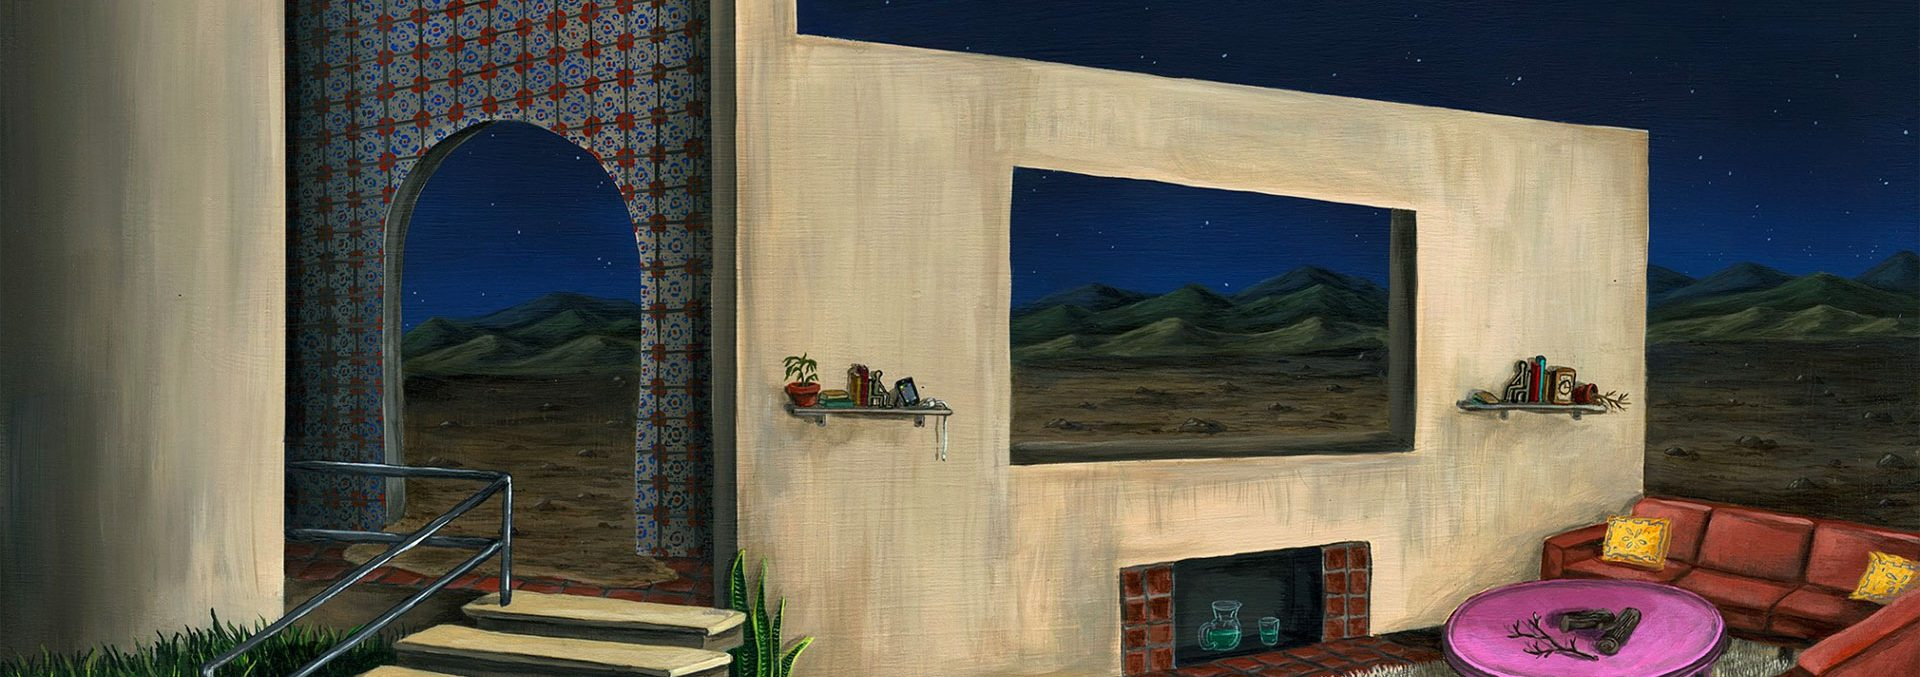 painting of a house in the desert with only a few walls by johnny alexander